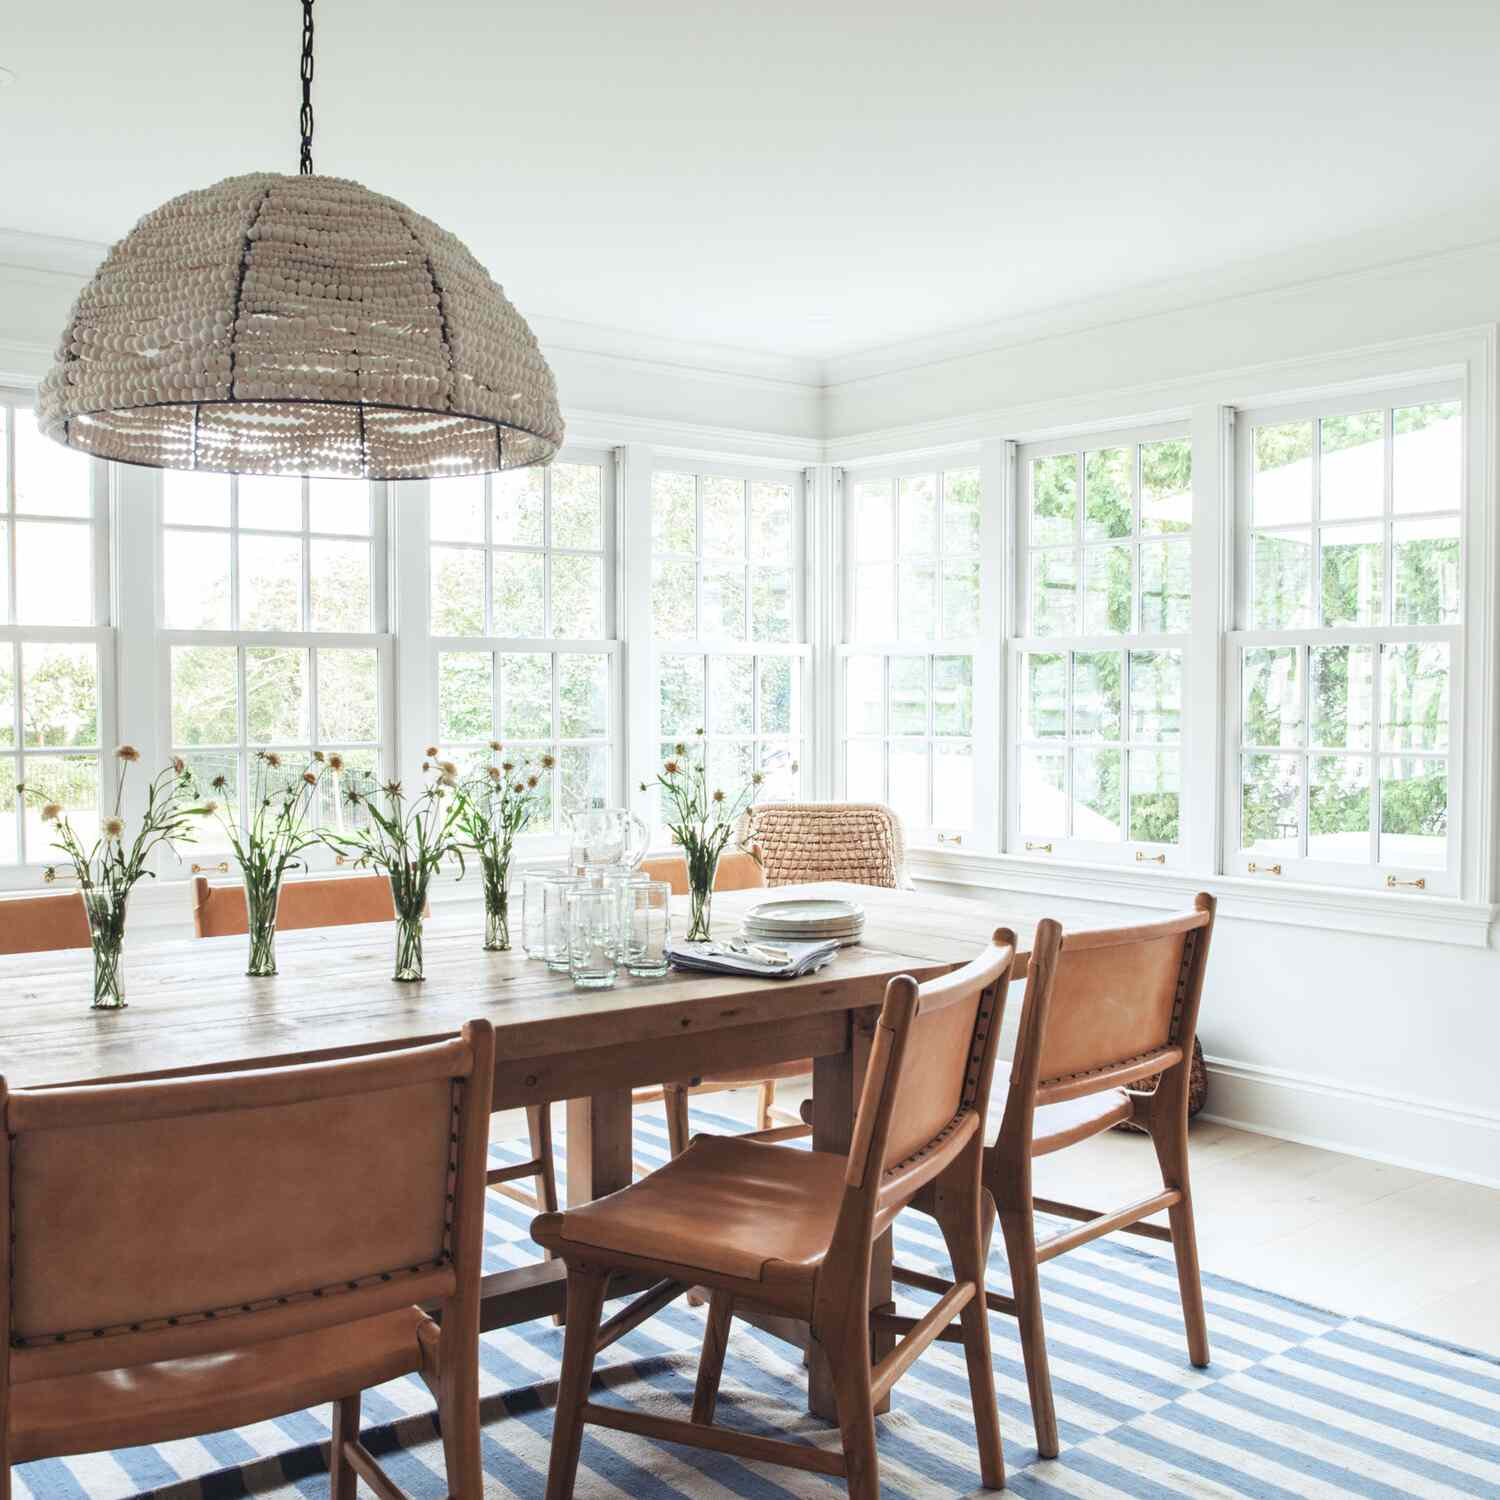 A dining room with leather chairs, a striped rug, and a beaded pendant light